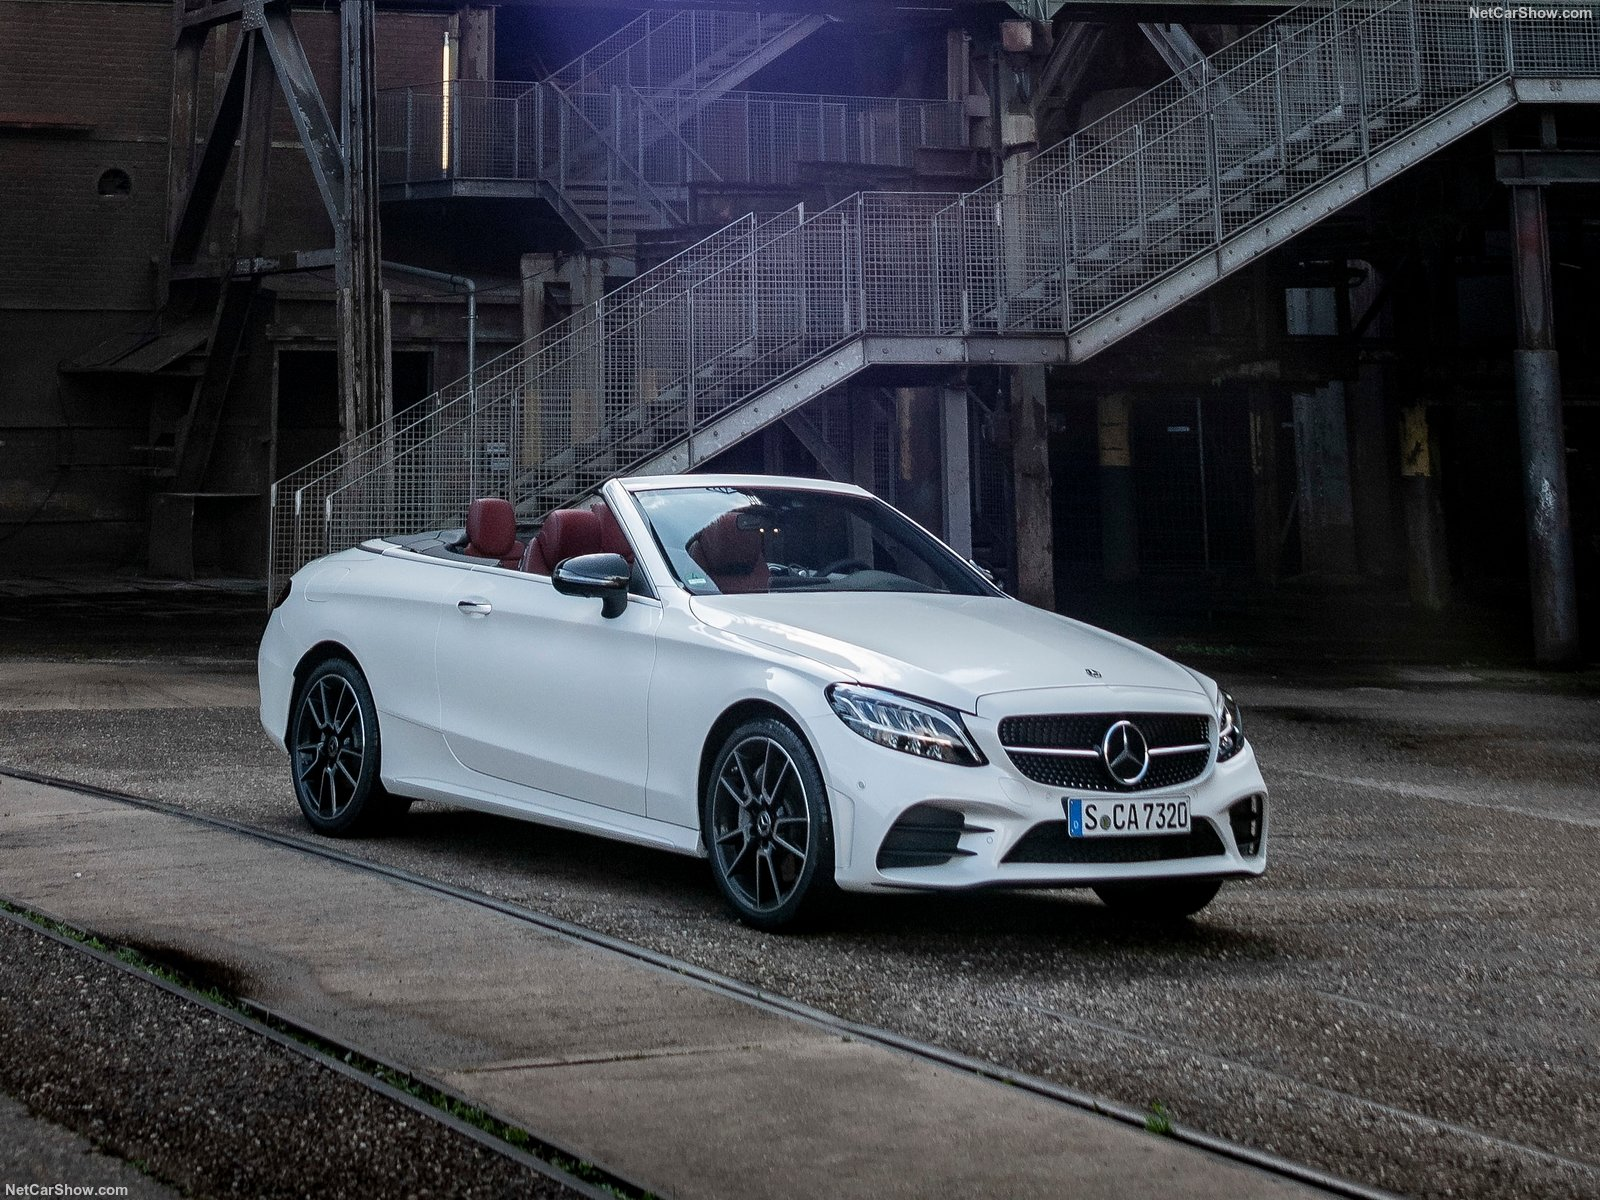 Mercedes-Benz C-Class Cabriolet photo 190431